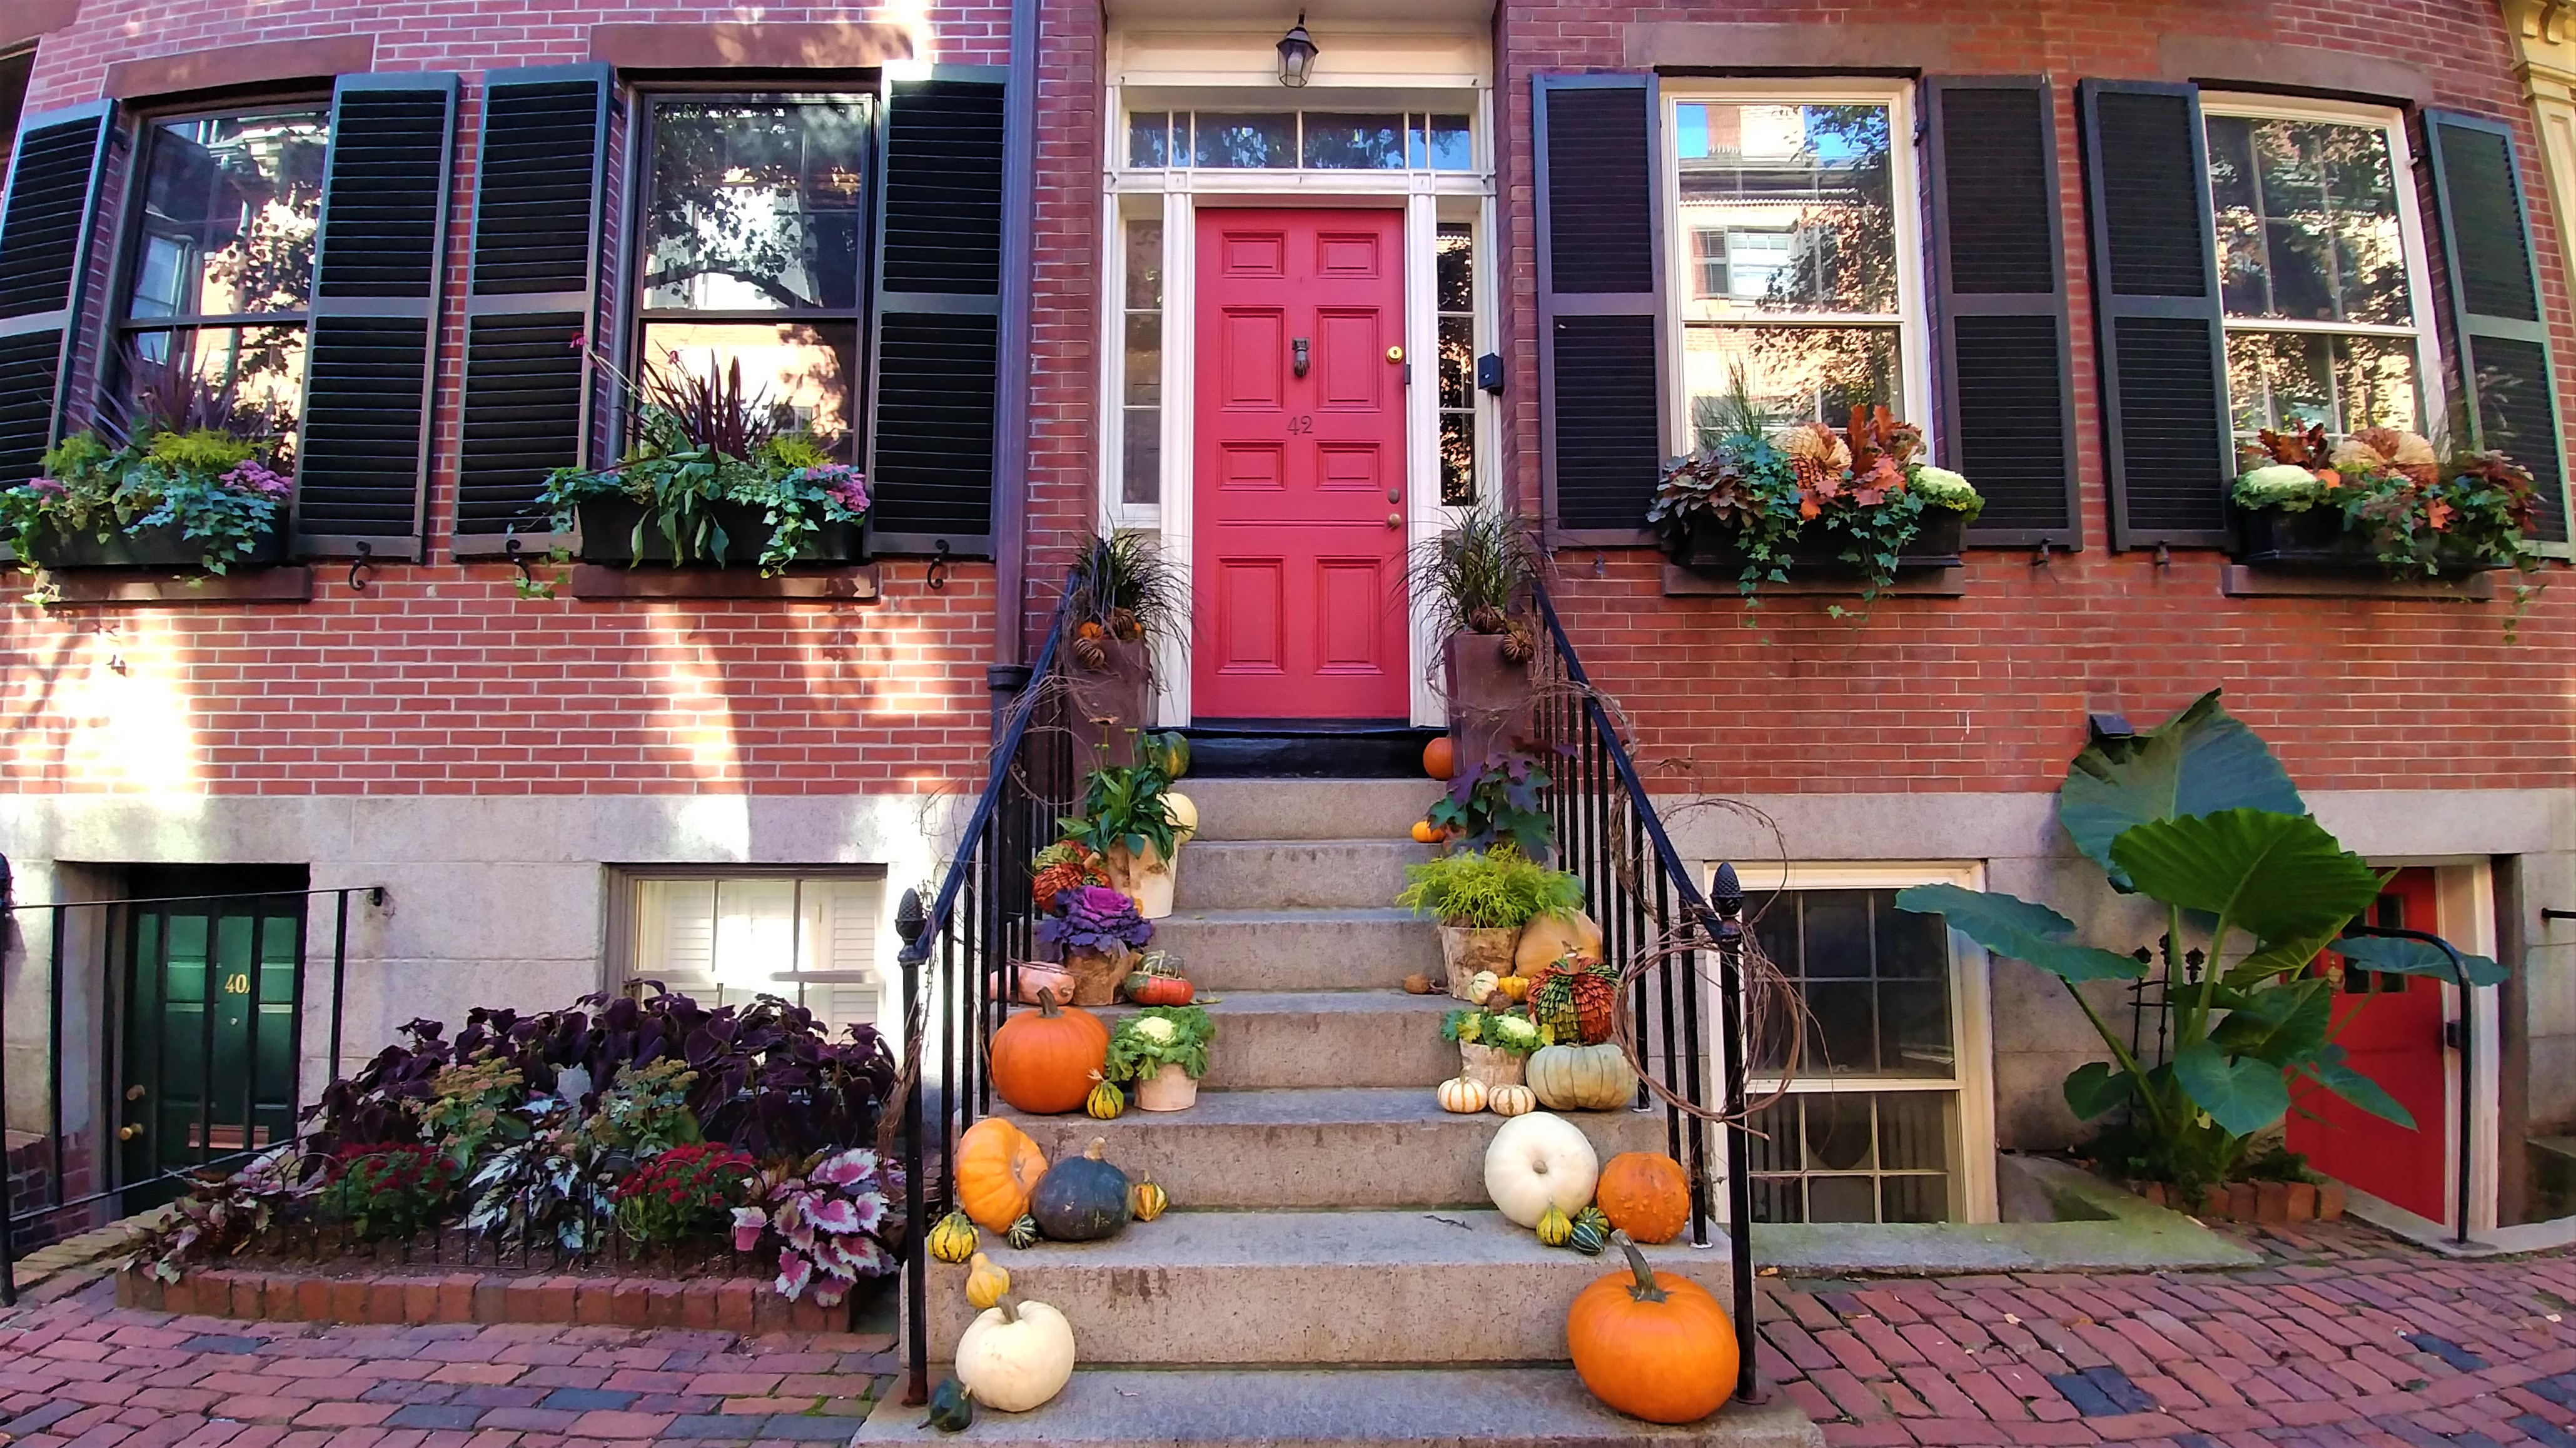 beacon hill boston road-trip usa blog voyage automne arpenter le chemin